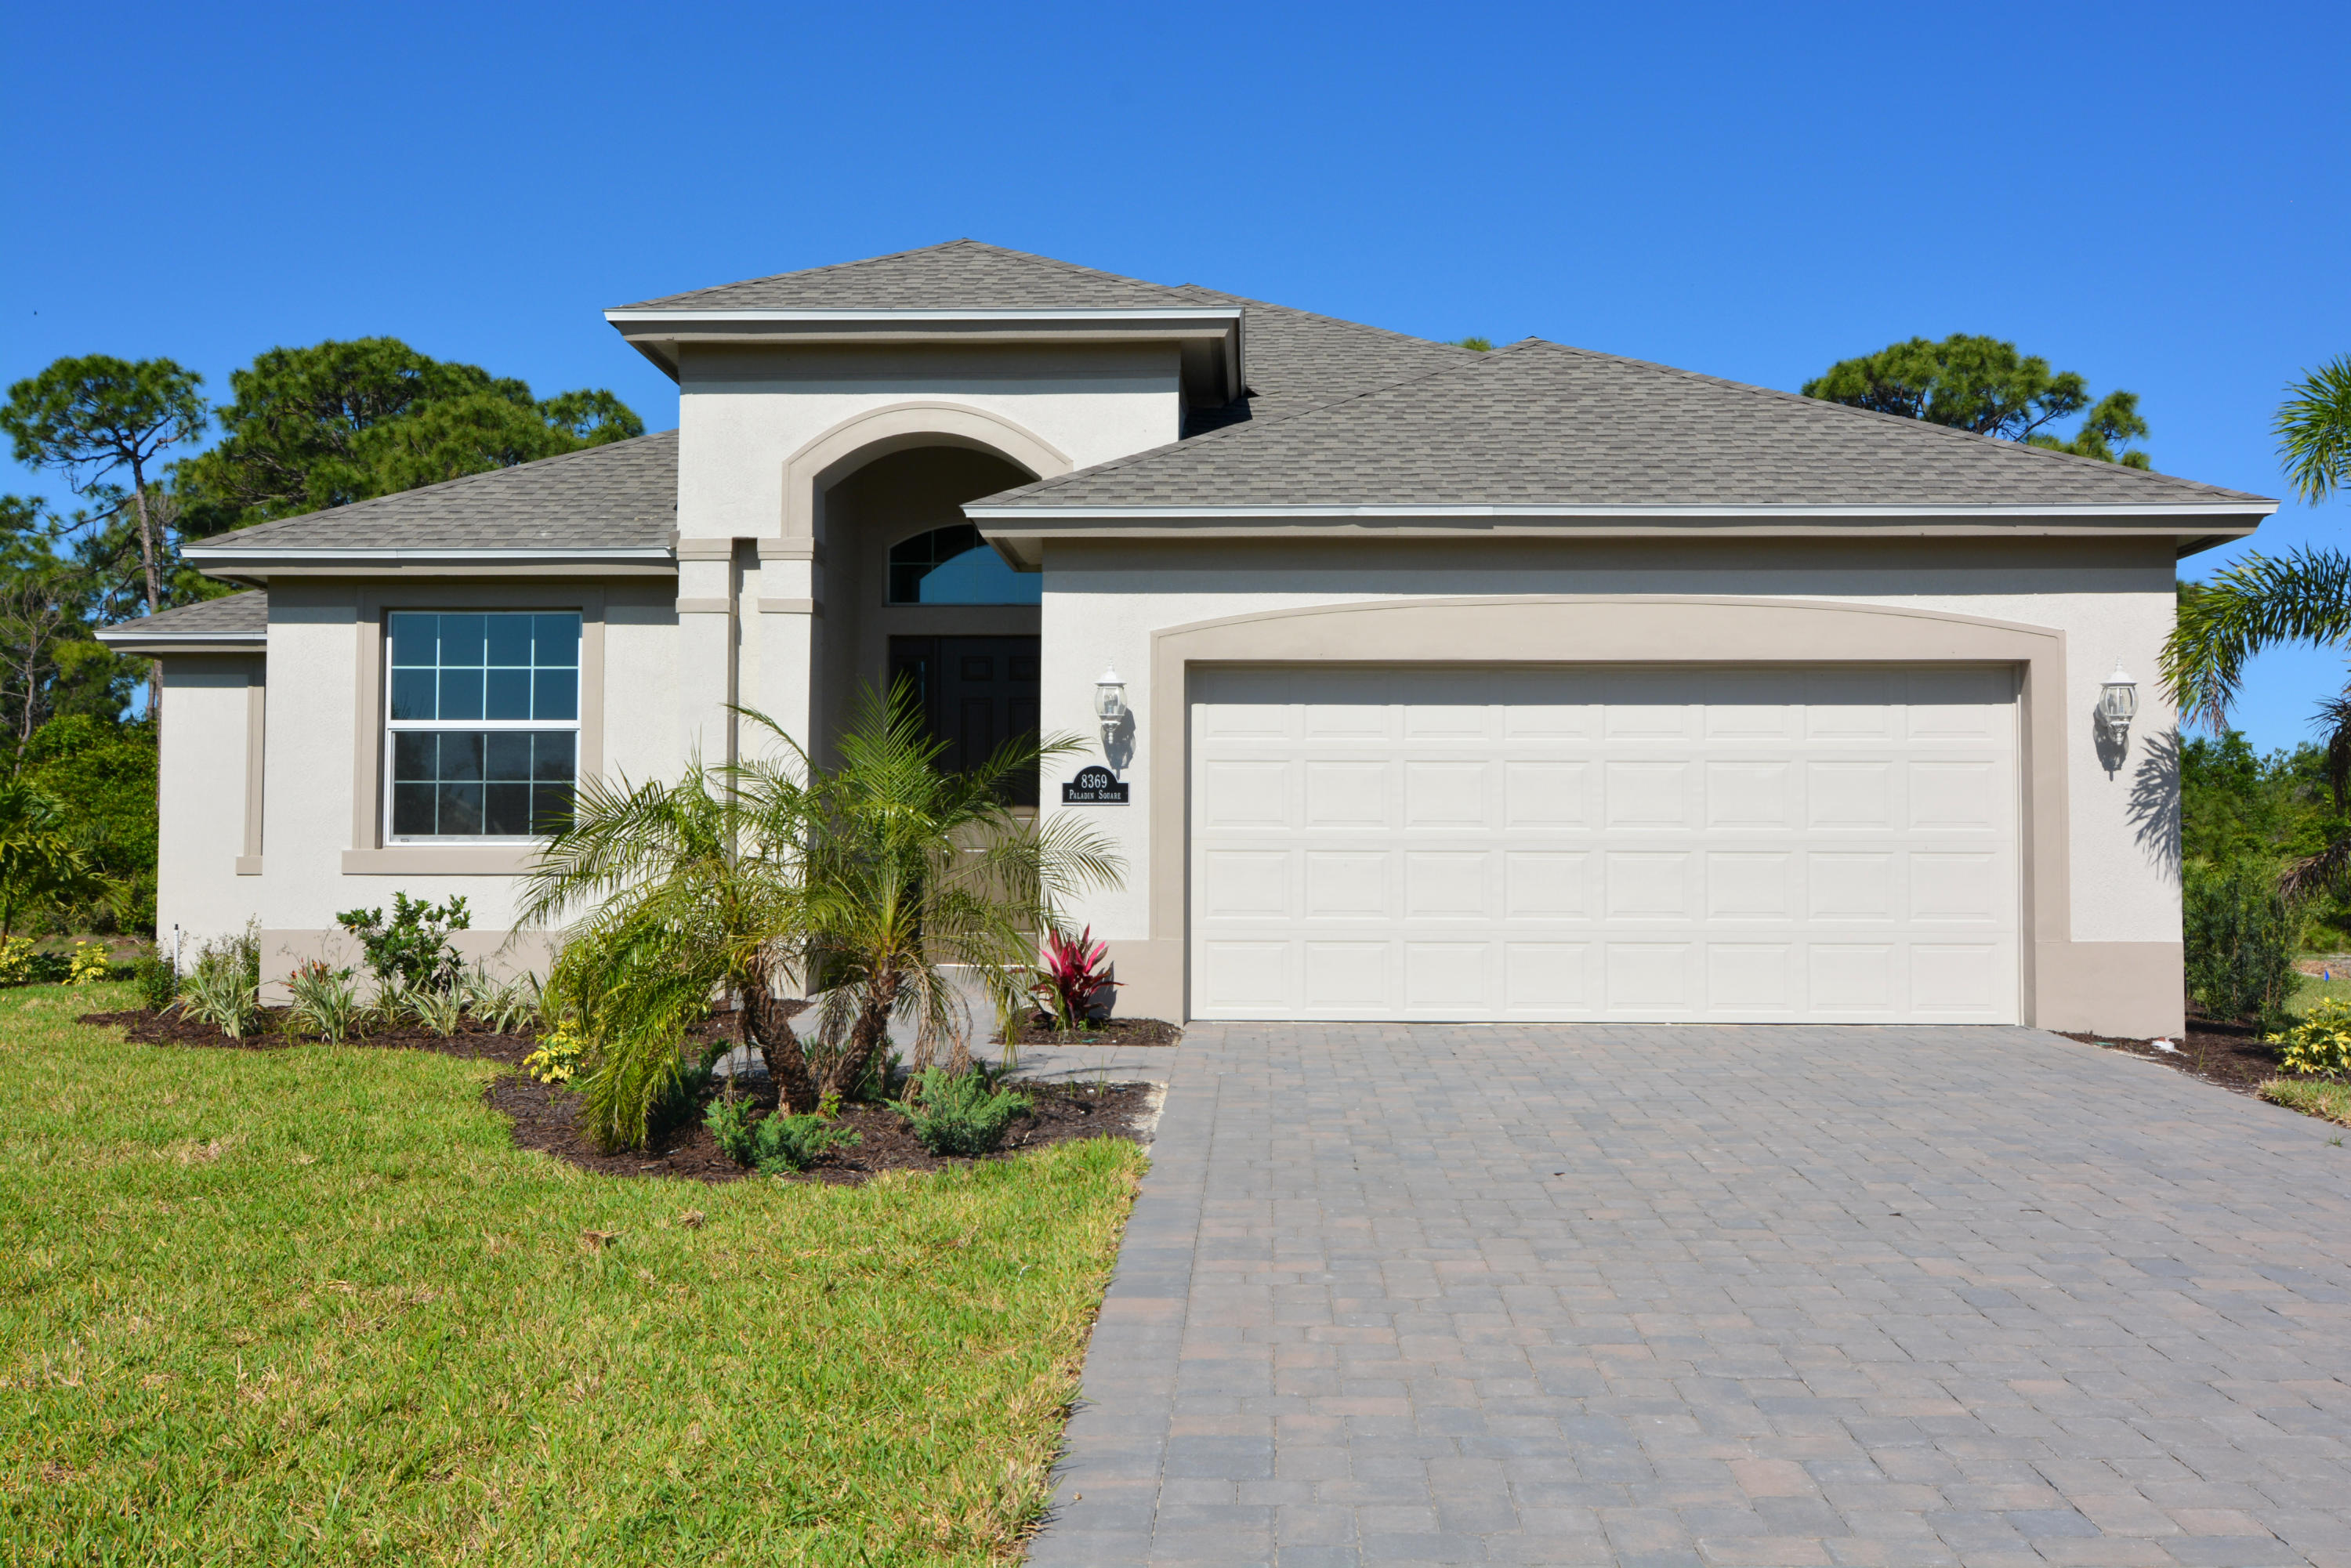 Photo of 8344 Paladin Square, Vero Beach, FL 32967